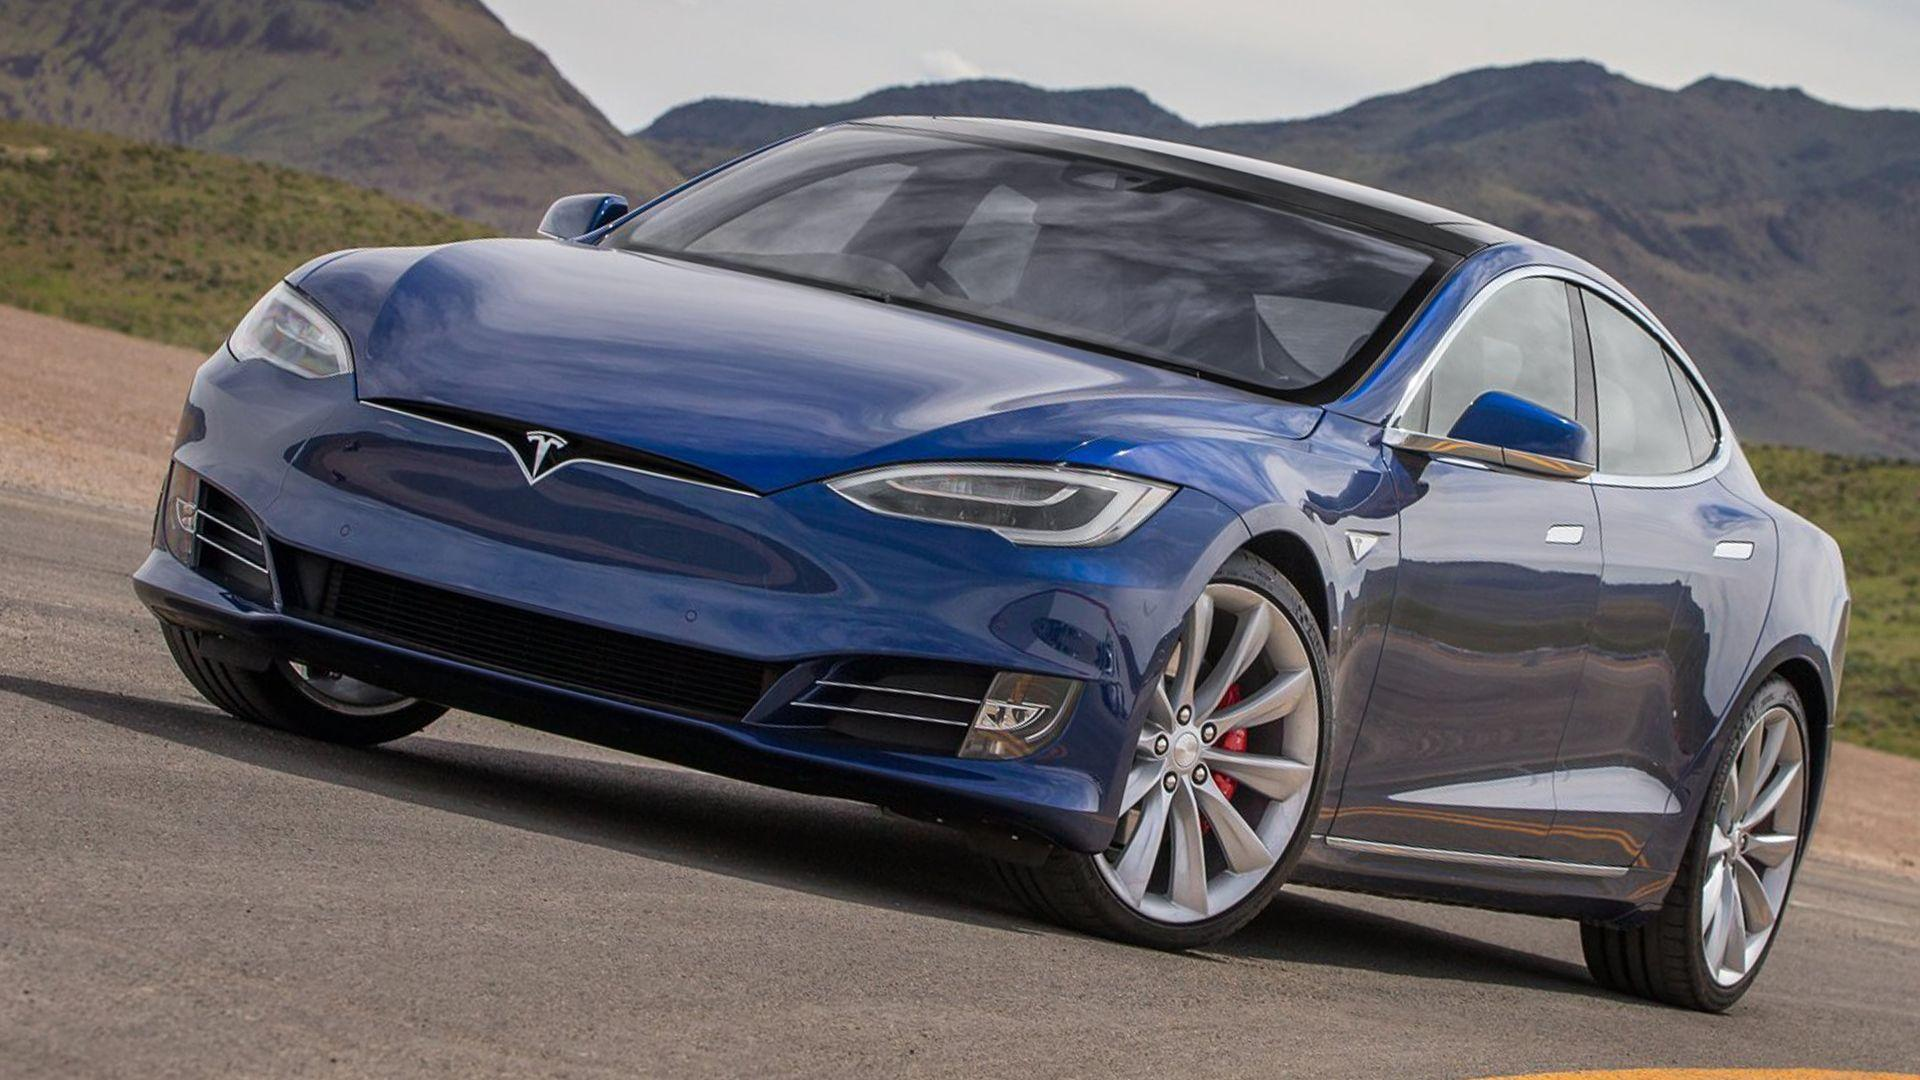 2019 Tesla Model S Wallpapers for Mobile